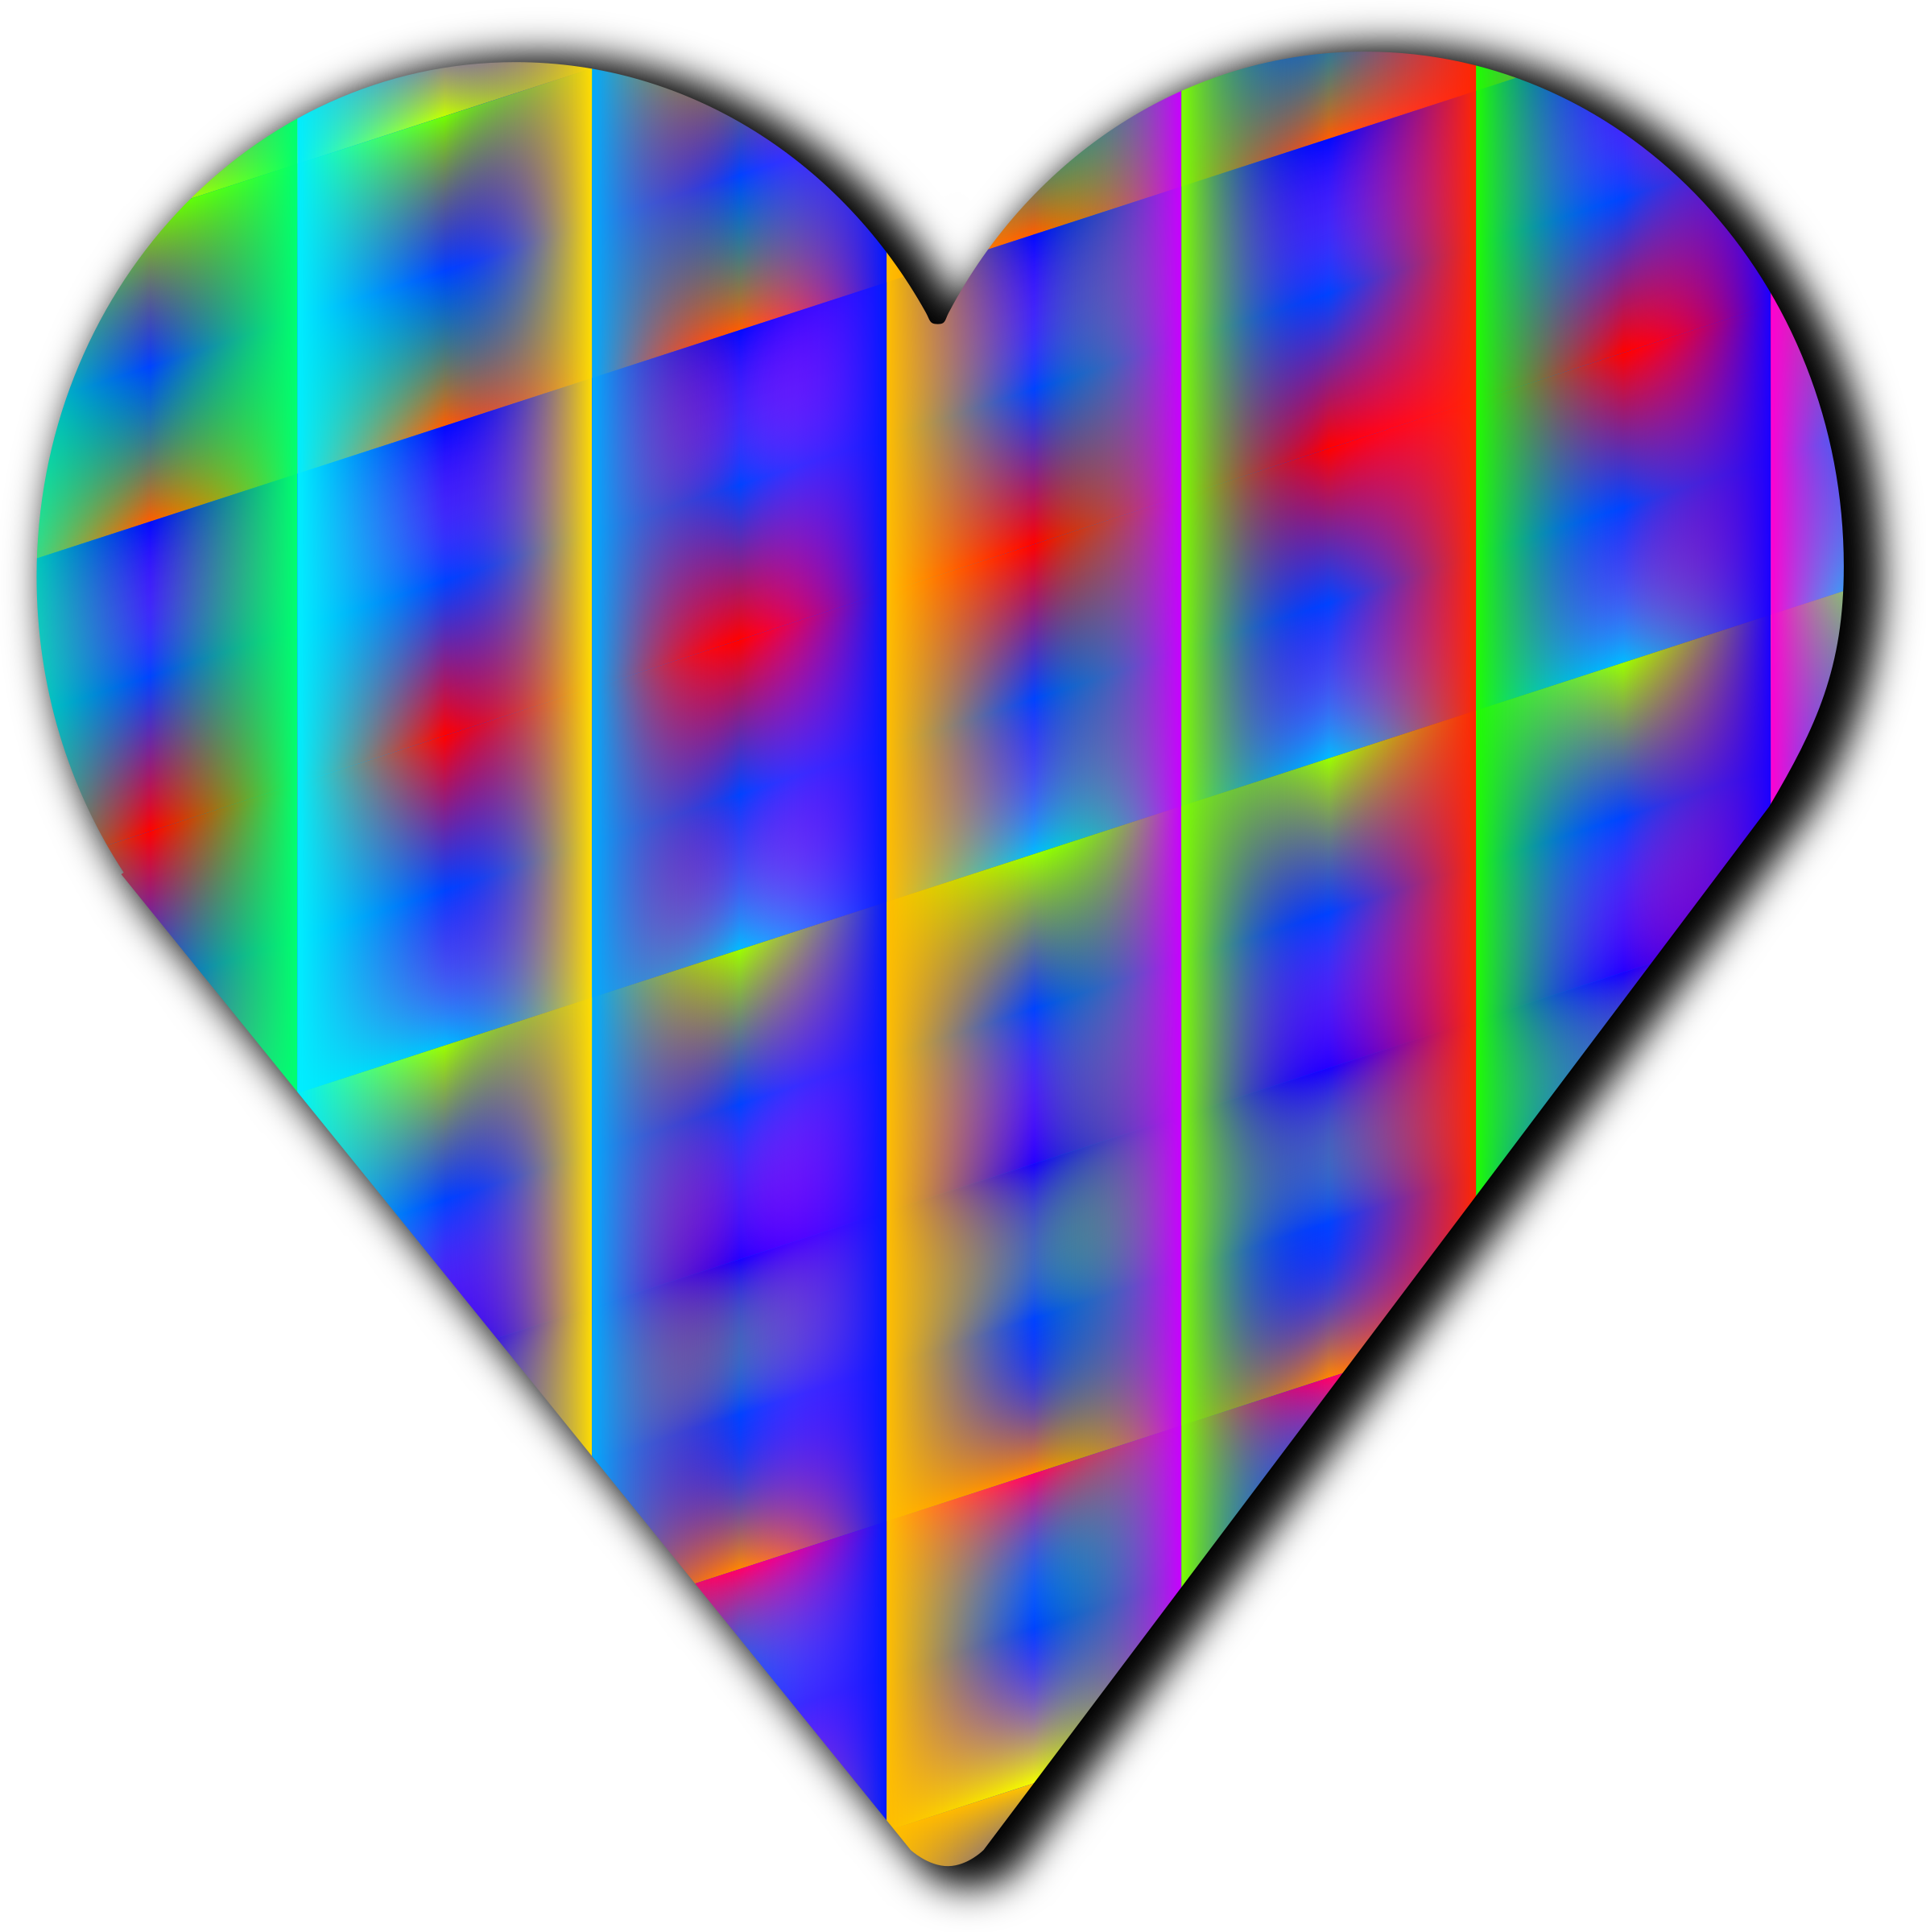 Clipart - Patterned heart 12 image library